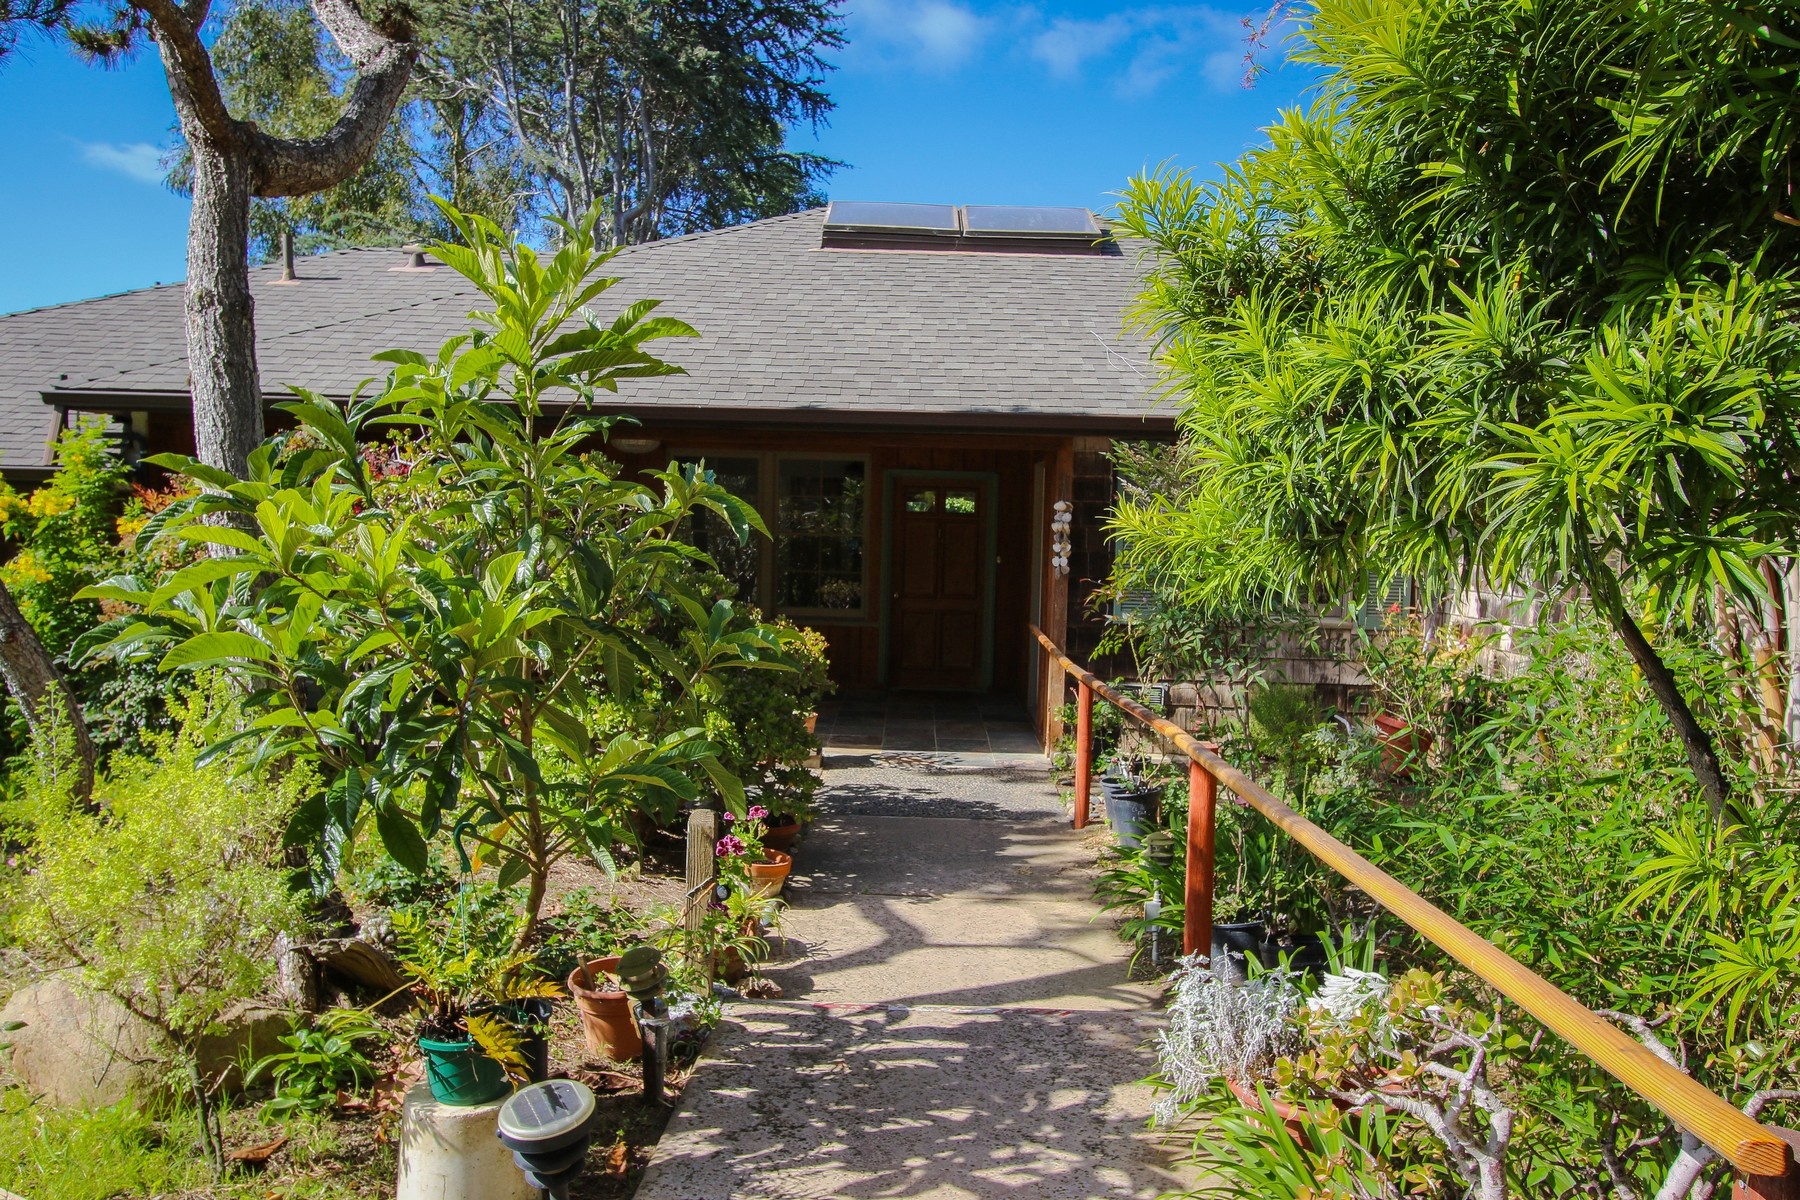 Additional photo for property listing at 7687 Hillside Drive 7687 Hillside Drive C La Jolla, California 92037 United States